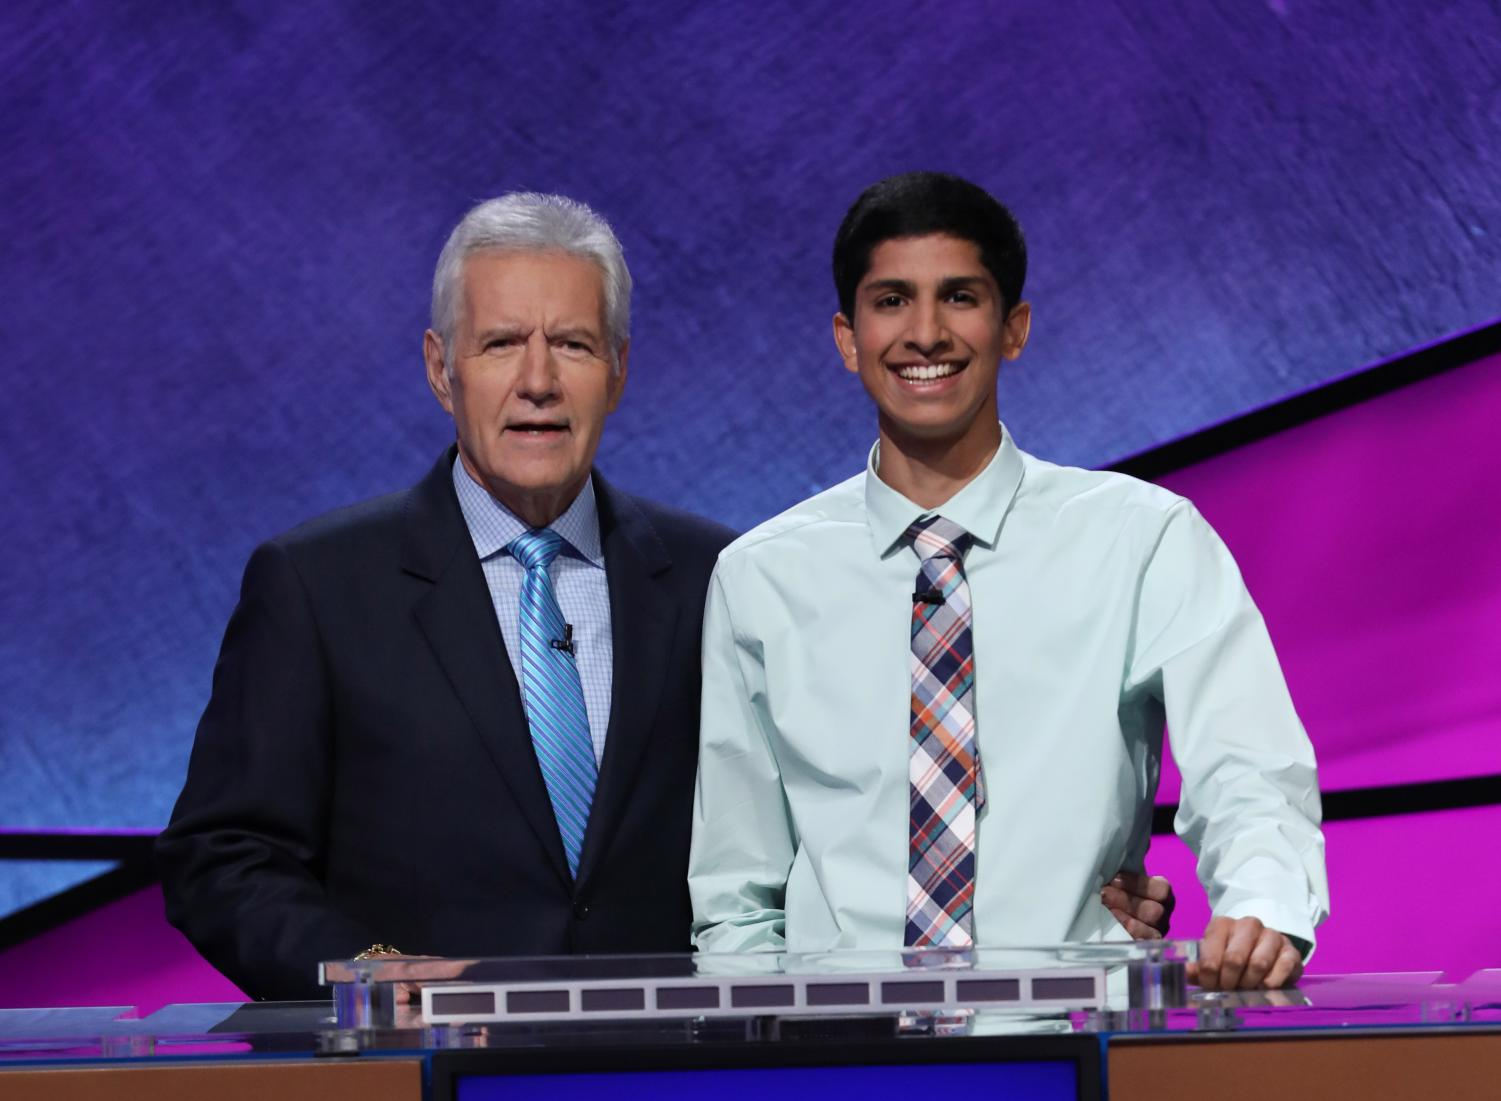 Anish Maddipoti '20 poses alongside host Alex Trebek for a photo. Photo courtesy of Jeopardy!.